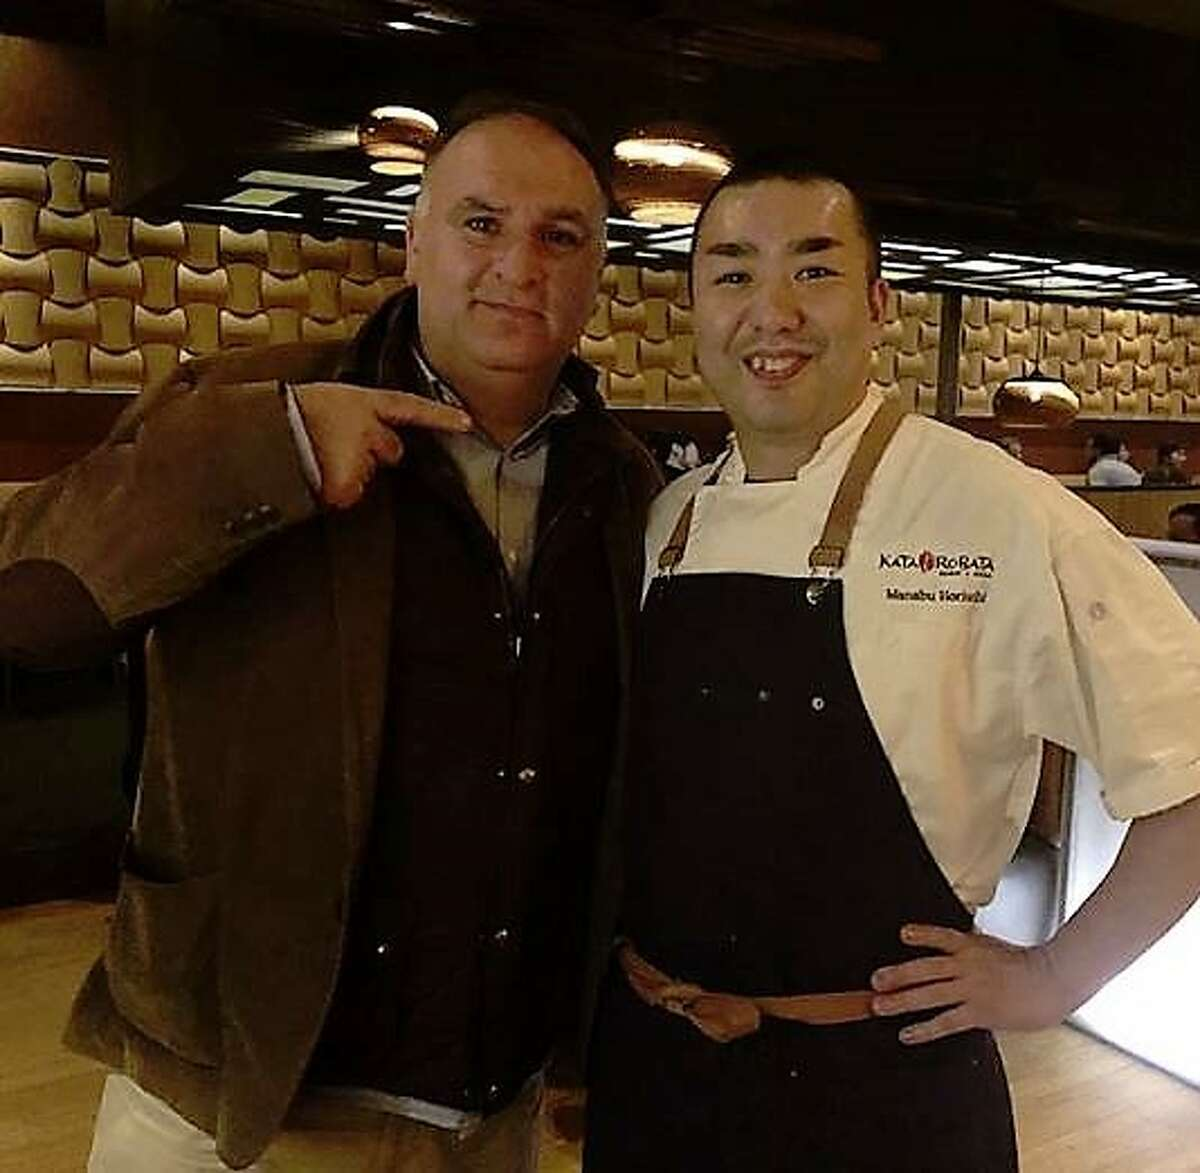 JanuaryWho: Jose Andres Where: Kata RobataDetails: When the celebrity chef hit town to speak at a conference immigrant reform. he left a social media trail of hotspots he visited, including Upper Kirby's Kata Robata, Heights bar Better Luck Tomorrow, and Midtown's Holman Draft Hall. Pictured: Jose Andres and Kata Robata's chef Horiuchi